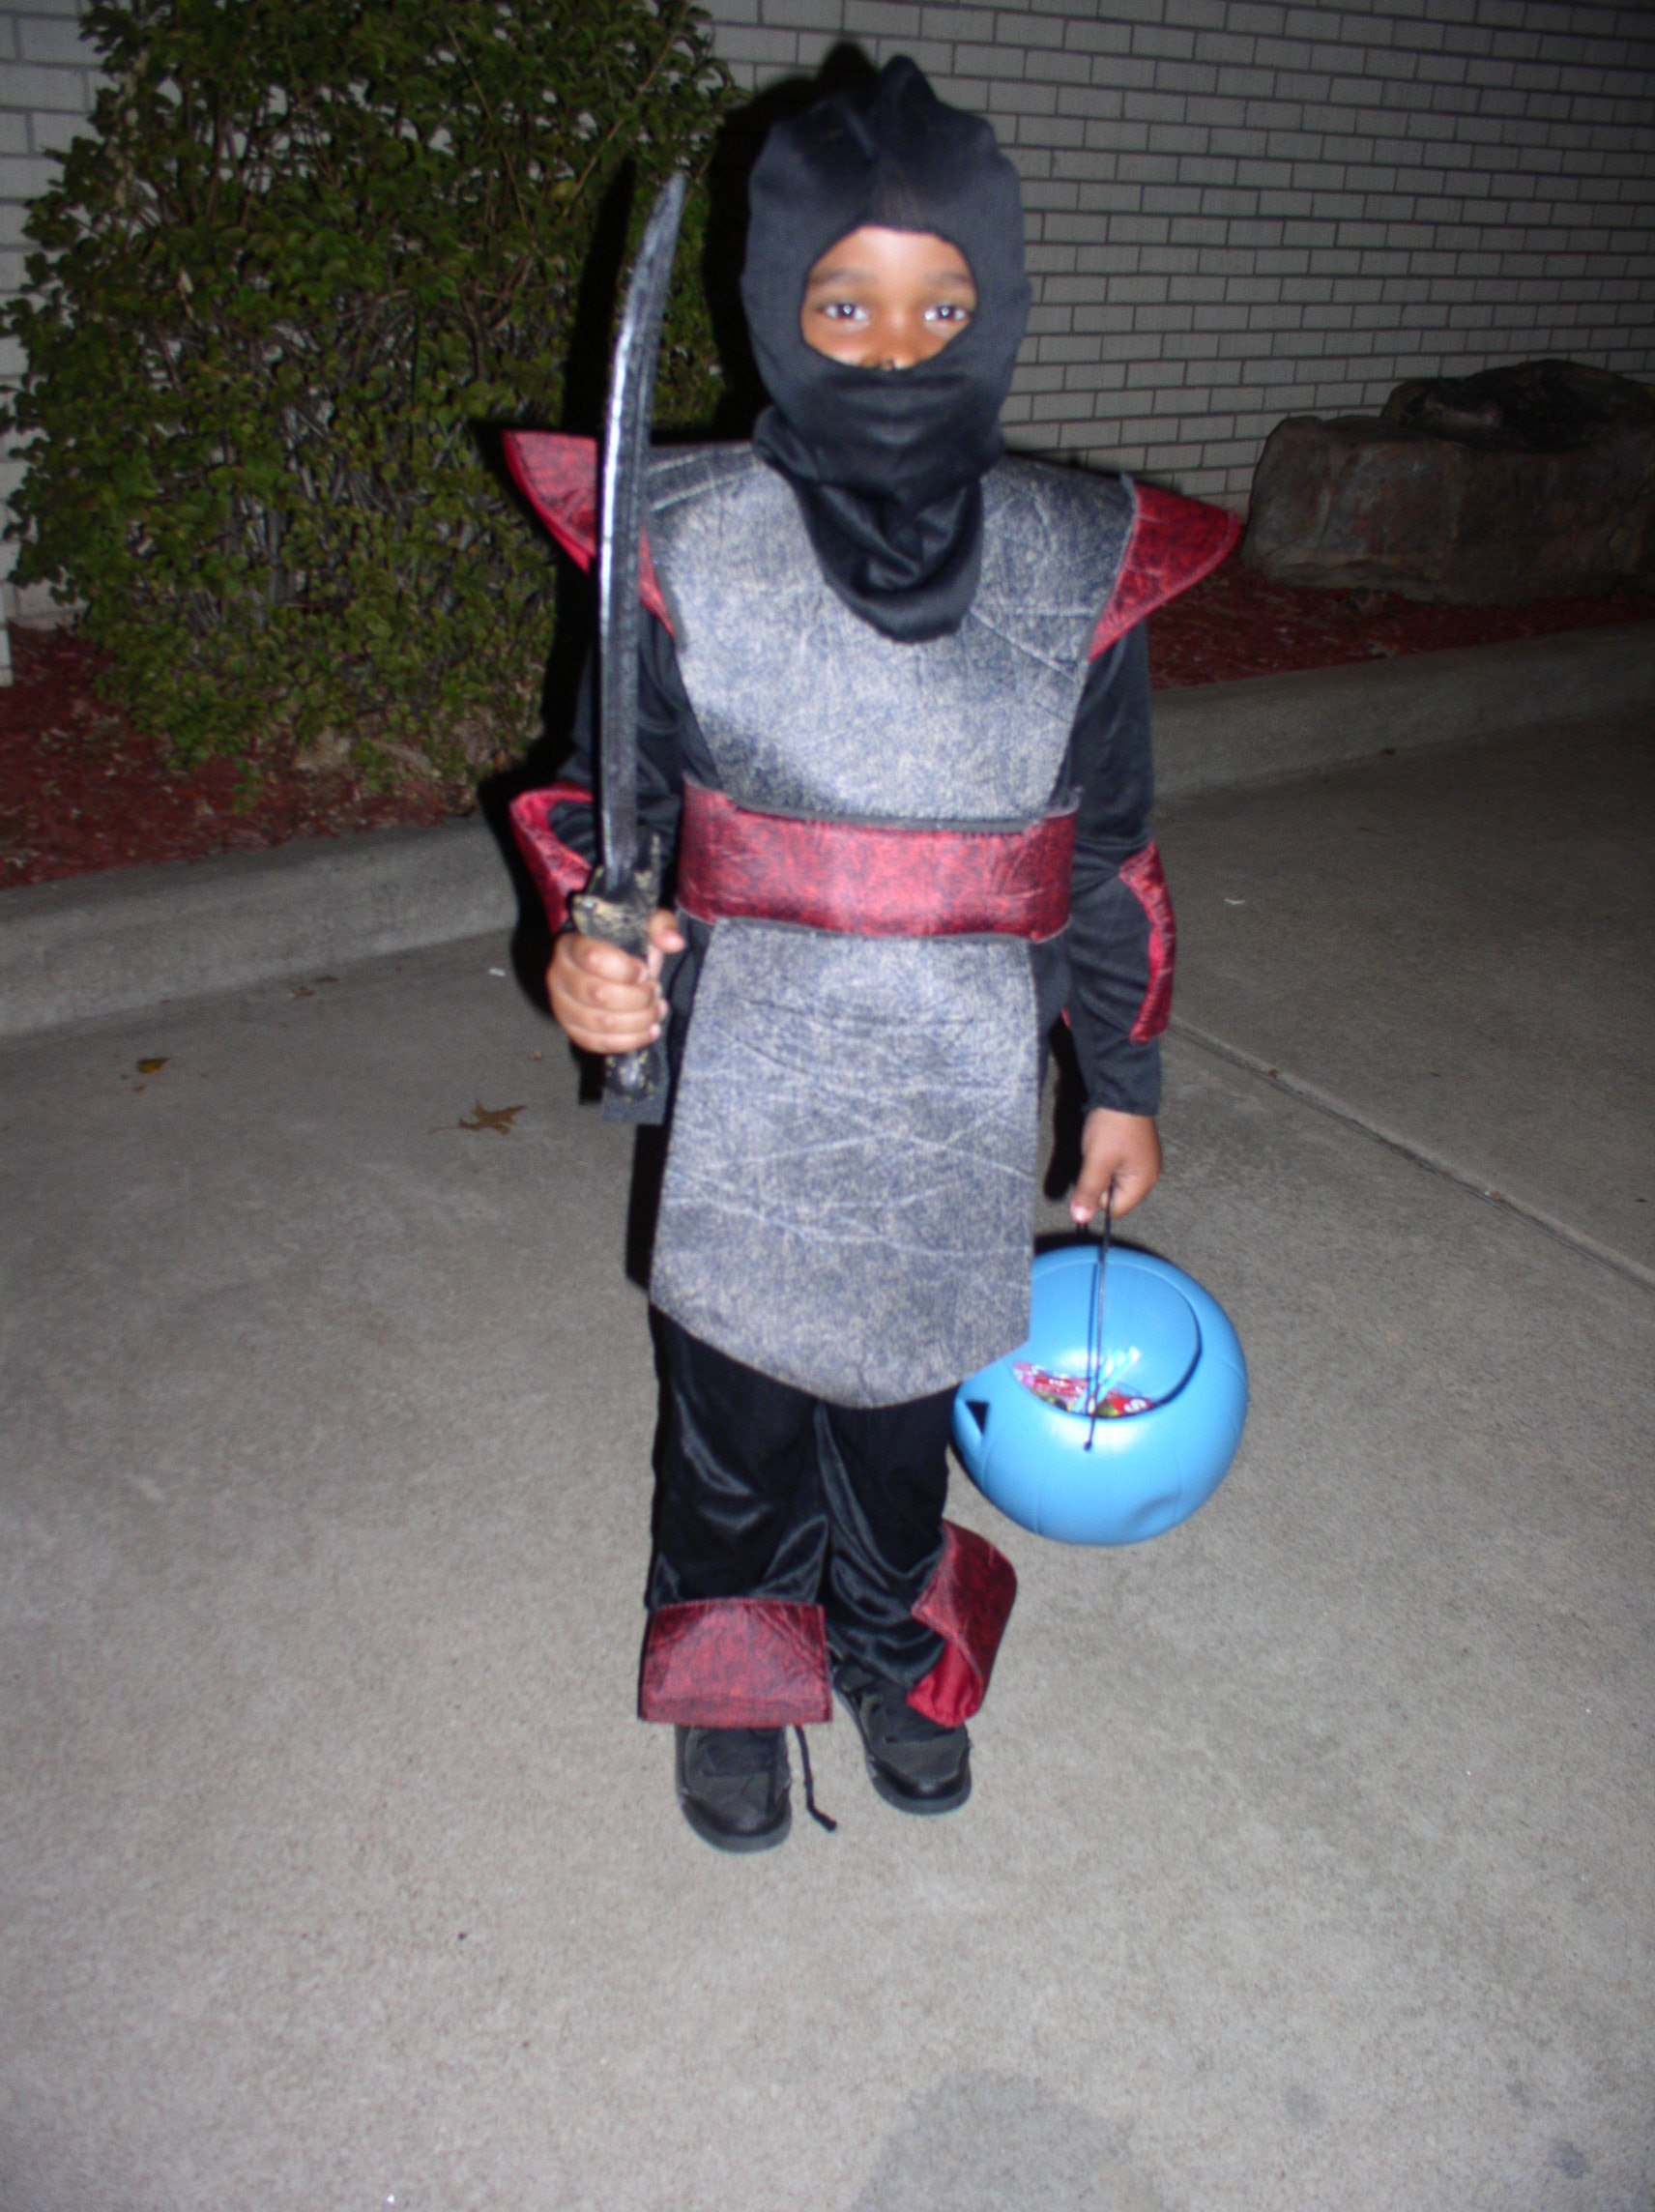 My grandson the Ninja